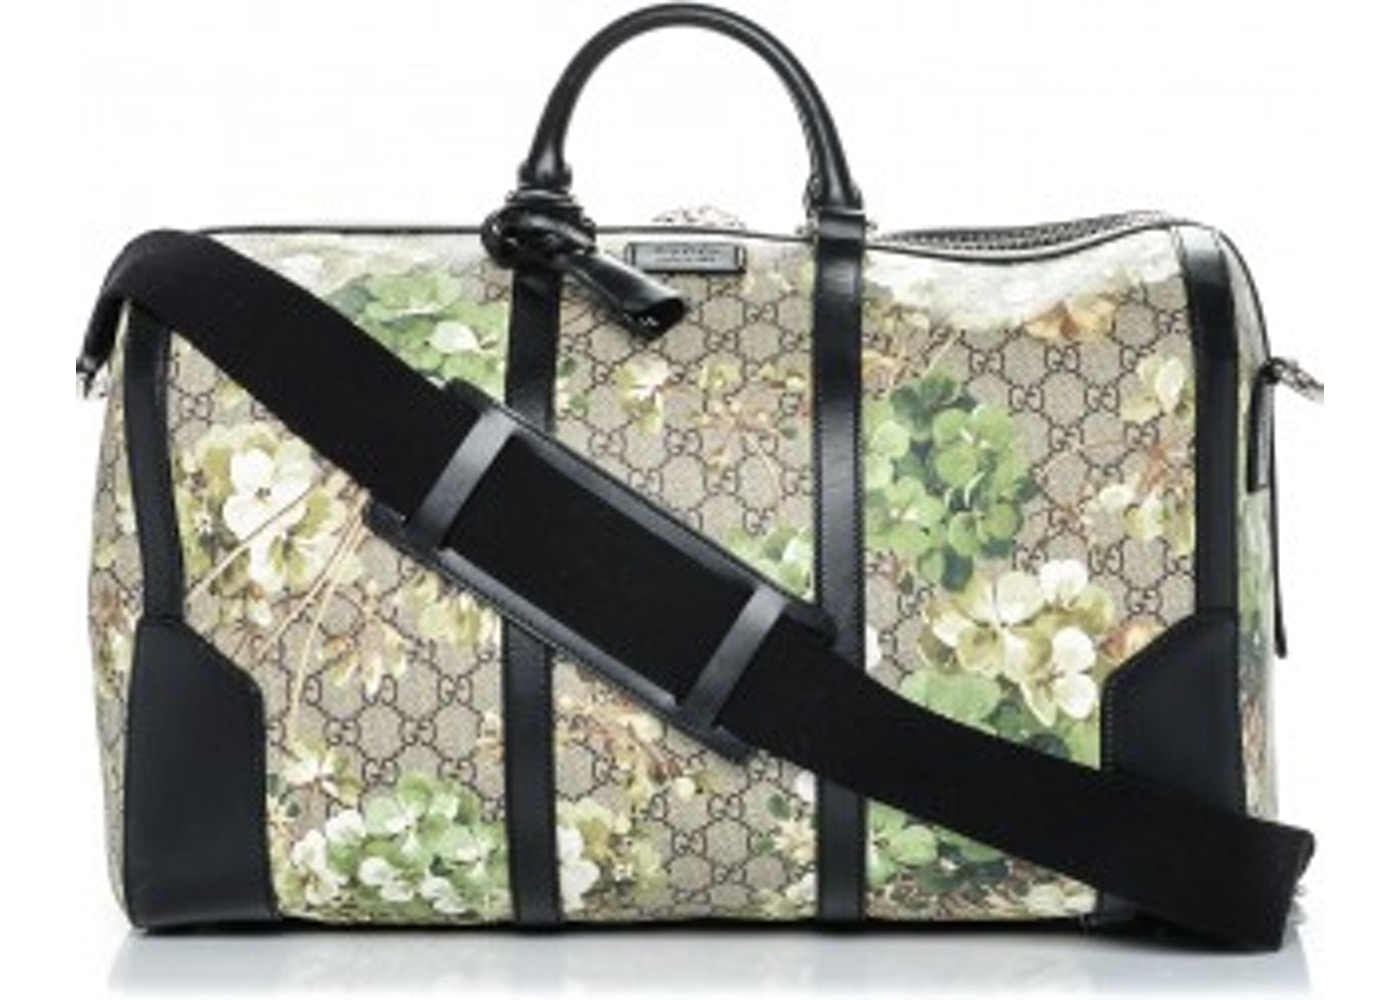 f6b65482545531 Gucci Duffle Bag Blooms GG Supreme Monogram Floral Print Medium ...